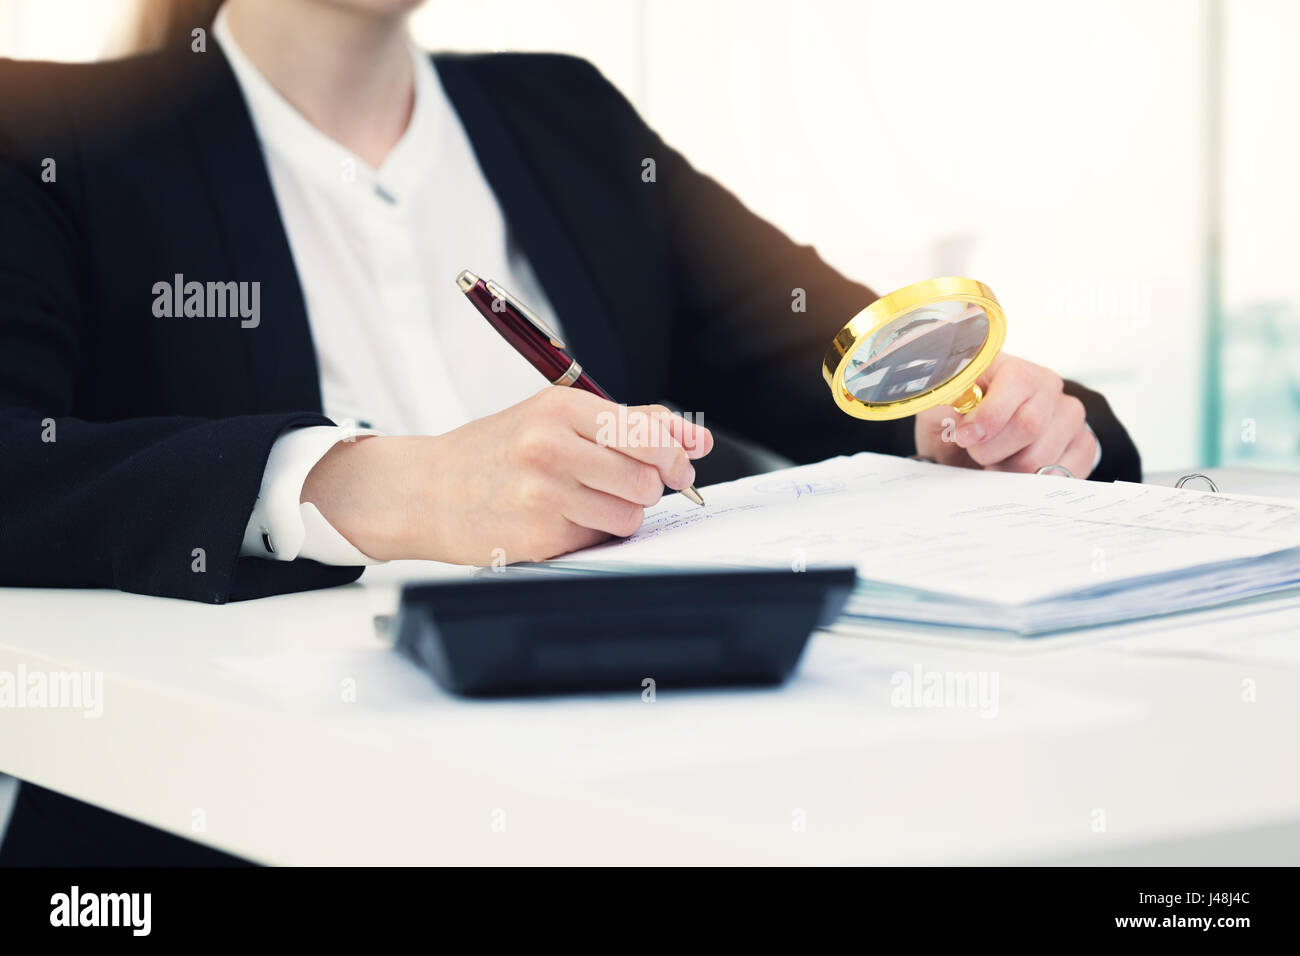 audit concept - auditor with magnifying glass inspecting documents in office - Stock Image